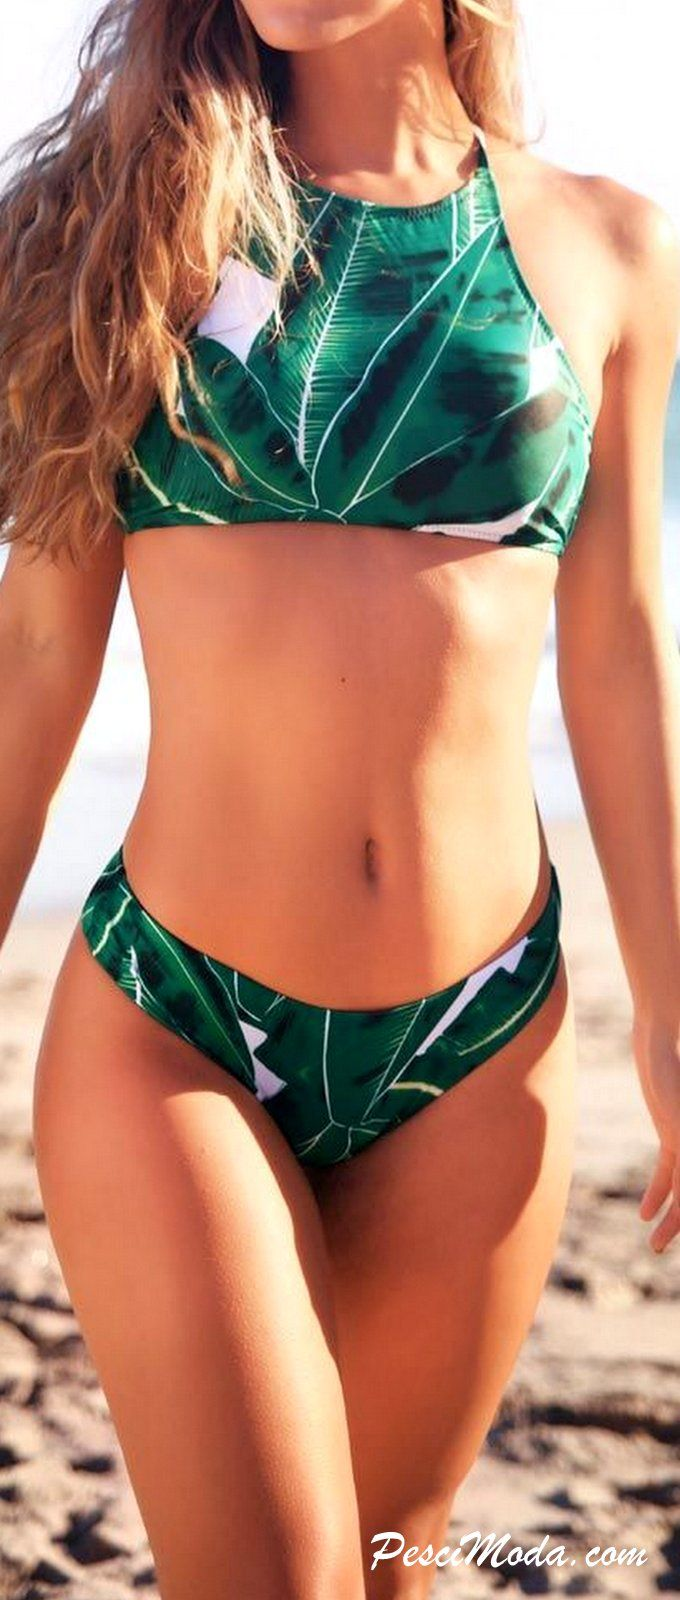 Product Description: Trendy Leaf Print High-Neck Women's Bikini Set Material: Polyester, Color: Green, Item: Swimwear, Style: Bikini Set, Season: Summer, Autumn, Collar: HighNeck, Waistline: Natural,